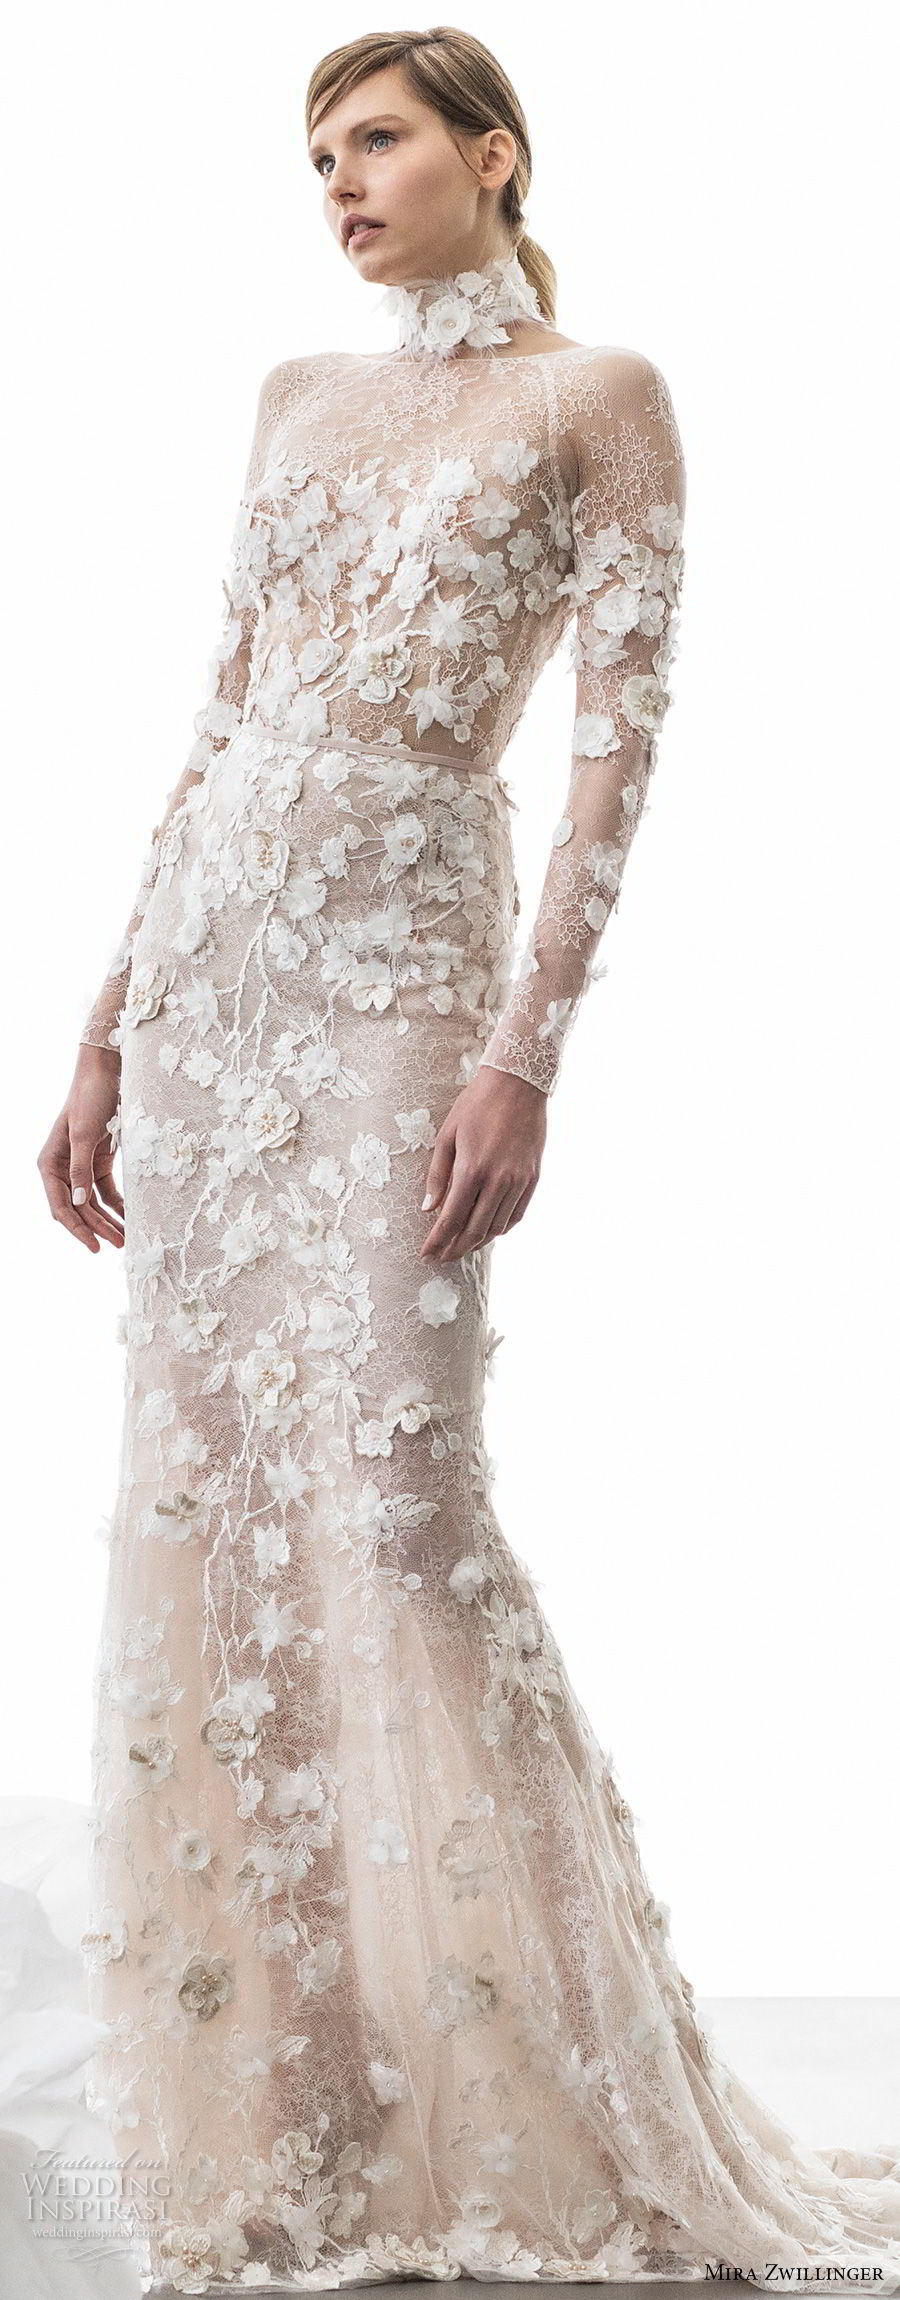 mira zwillinger 2018 bridal long sleeves bateau neck full embellishment elegant sexy romantic sheath wedding dress open v back short train (olivia) mv